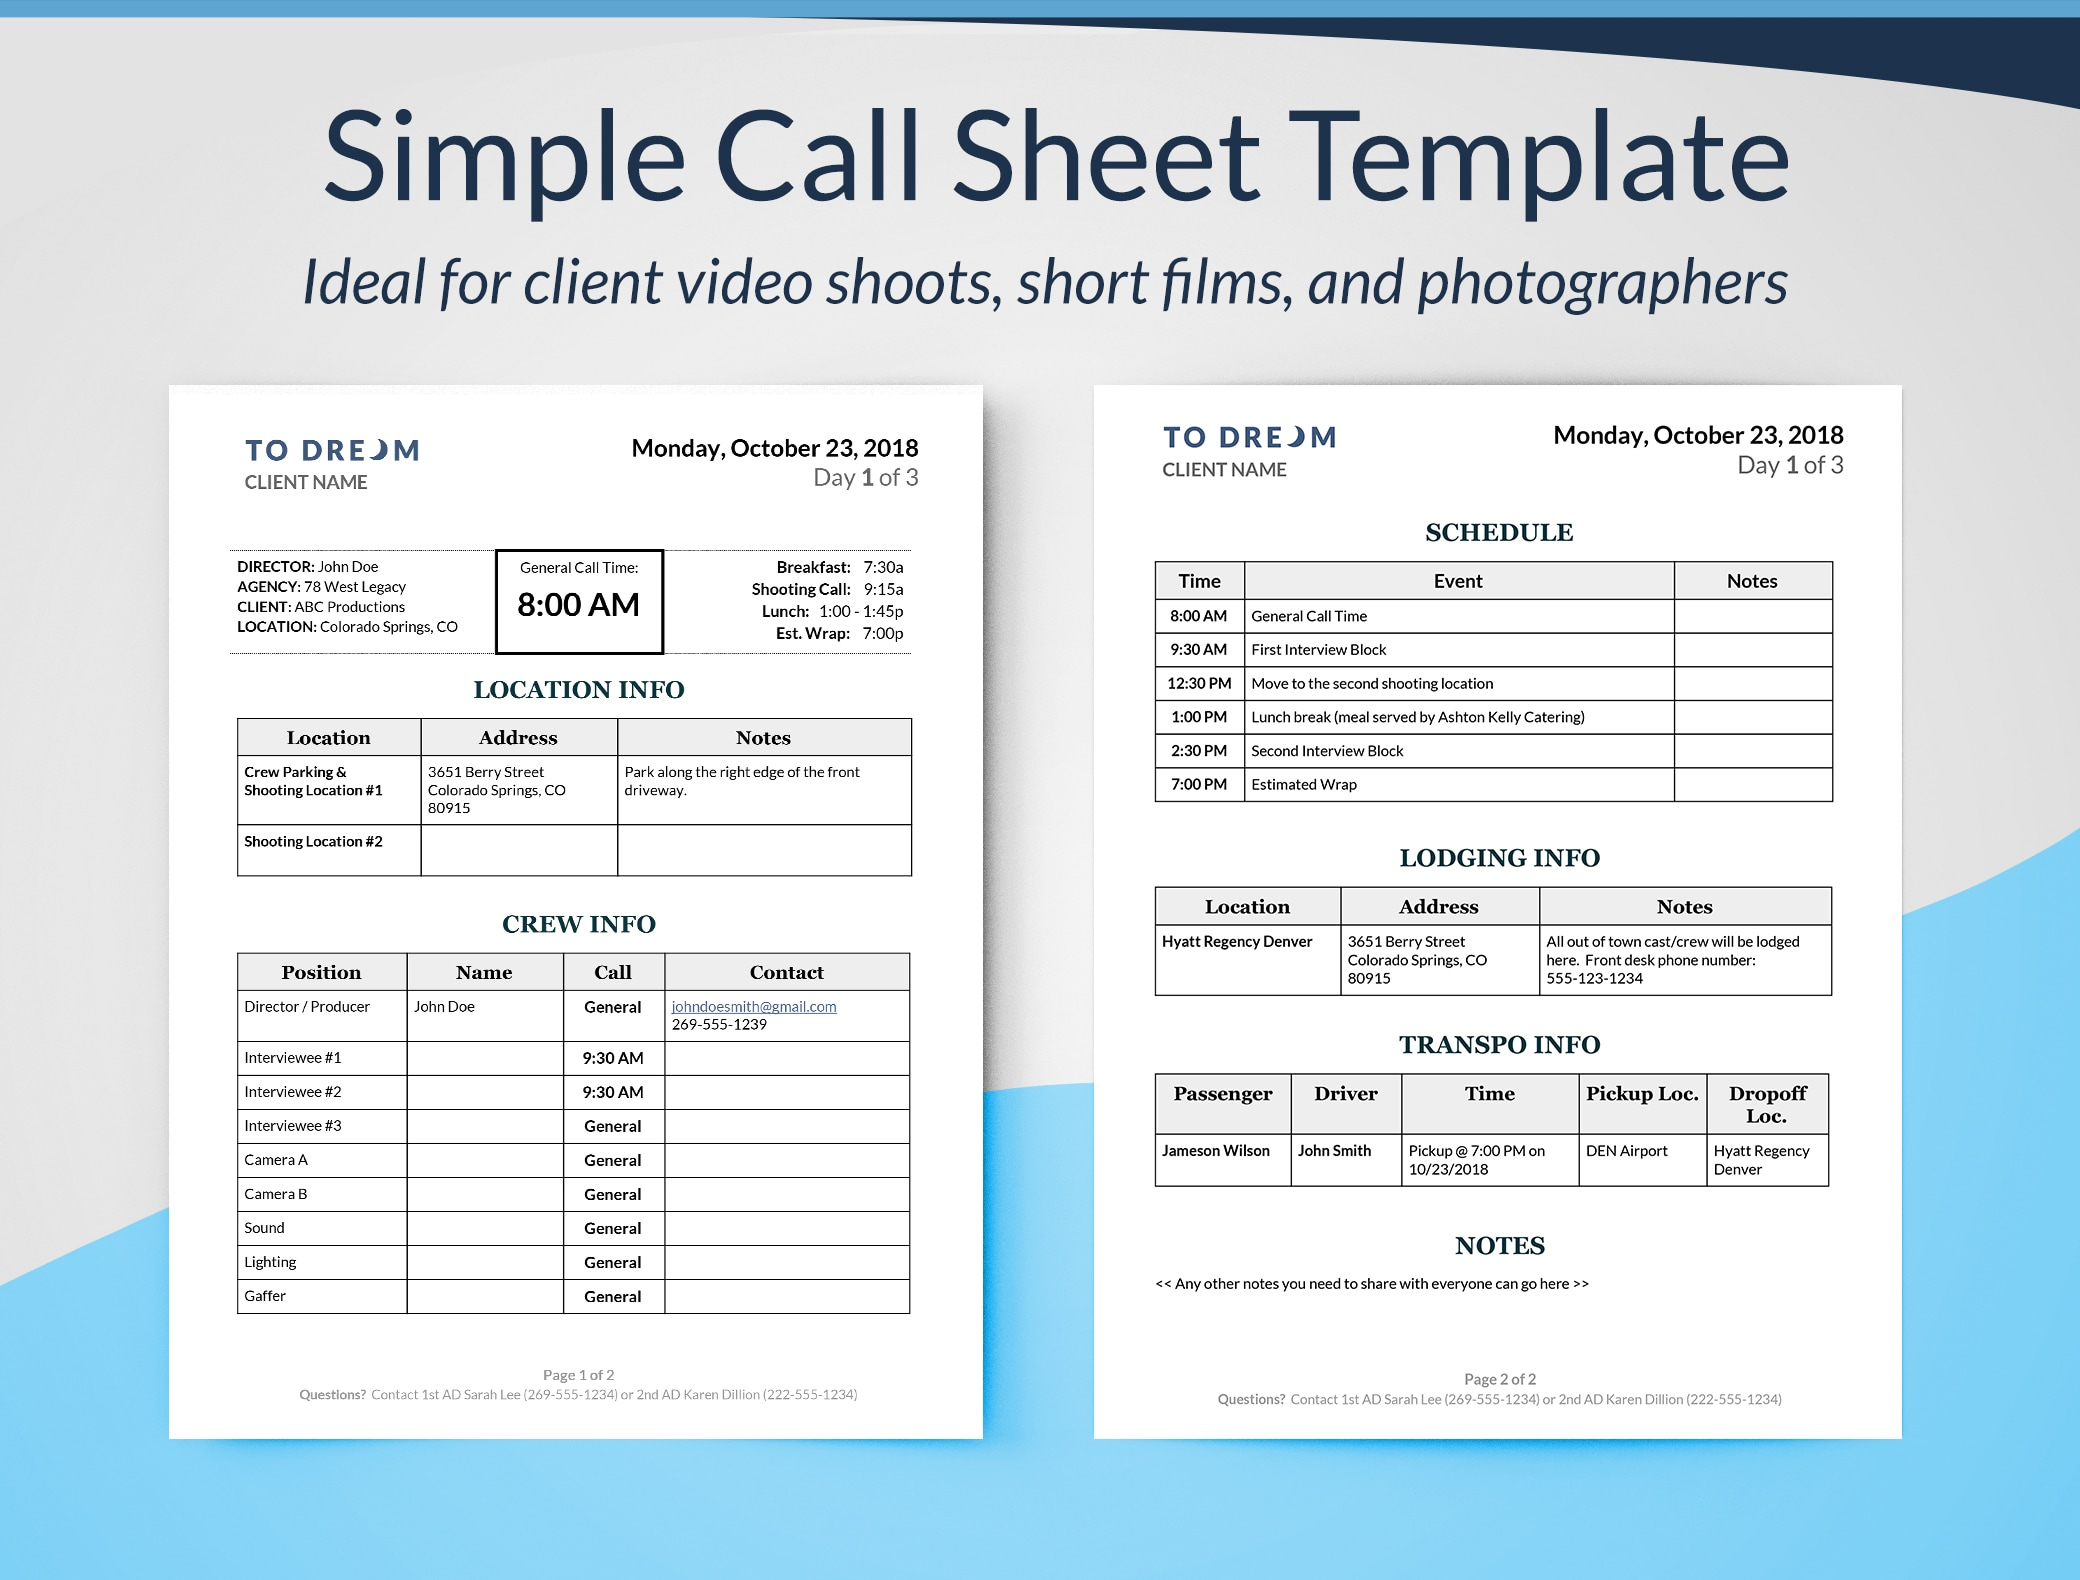 Simple call sheet word template - for client video shoots, short films, and photographers